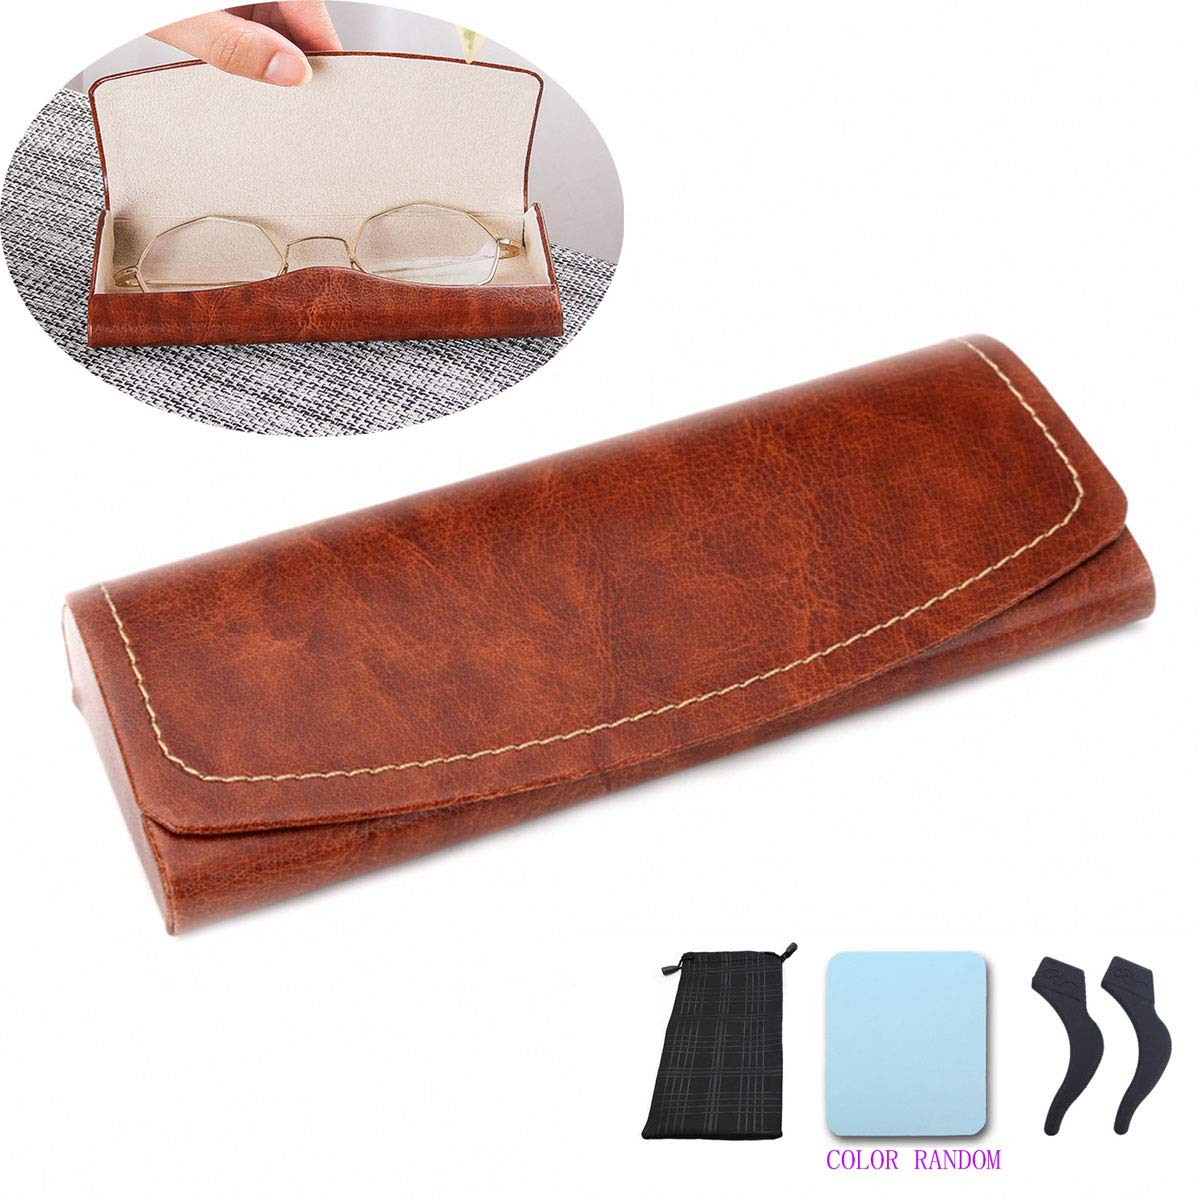 PU Leather Hard Shell Eyeglass Case Portable Sunglasses Glasses Holder Pouch (Brown)